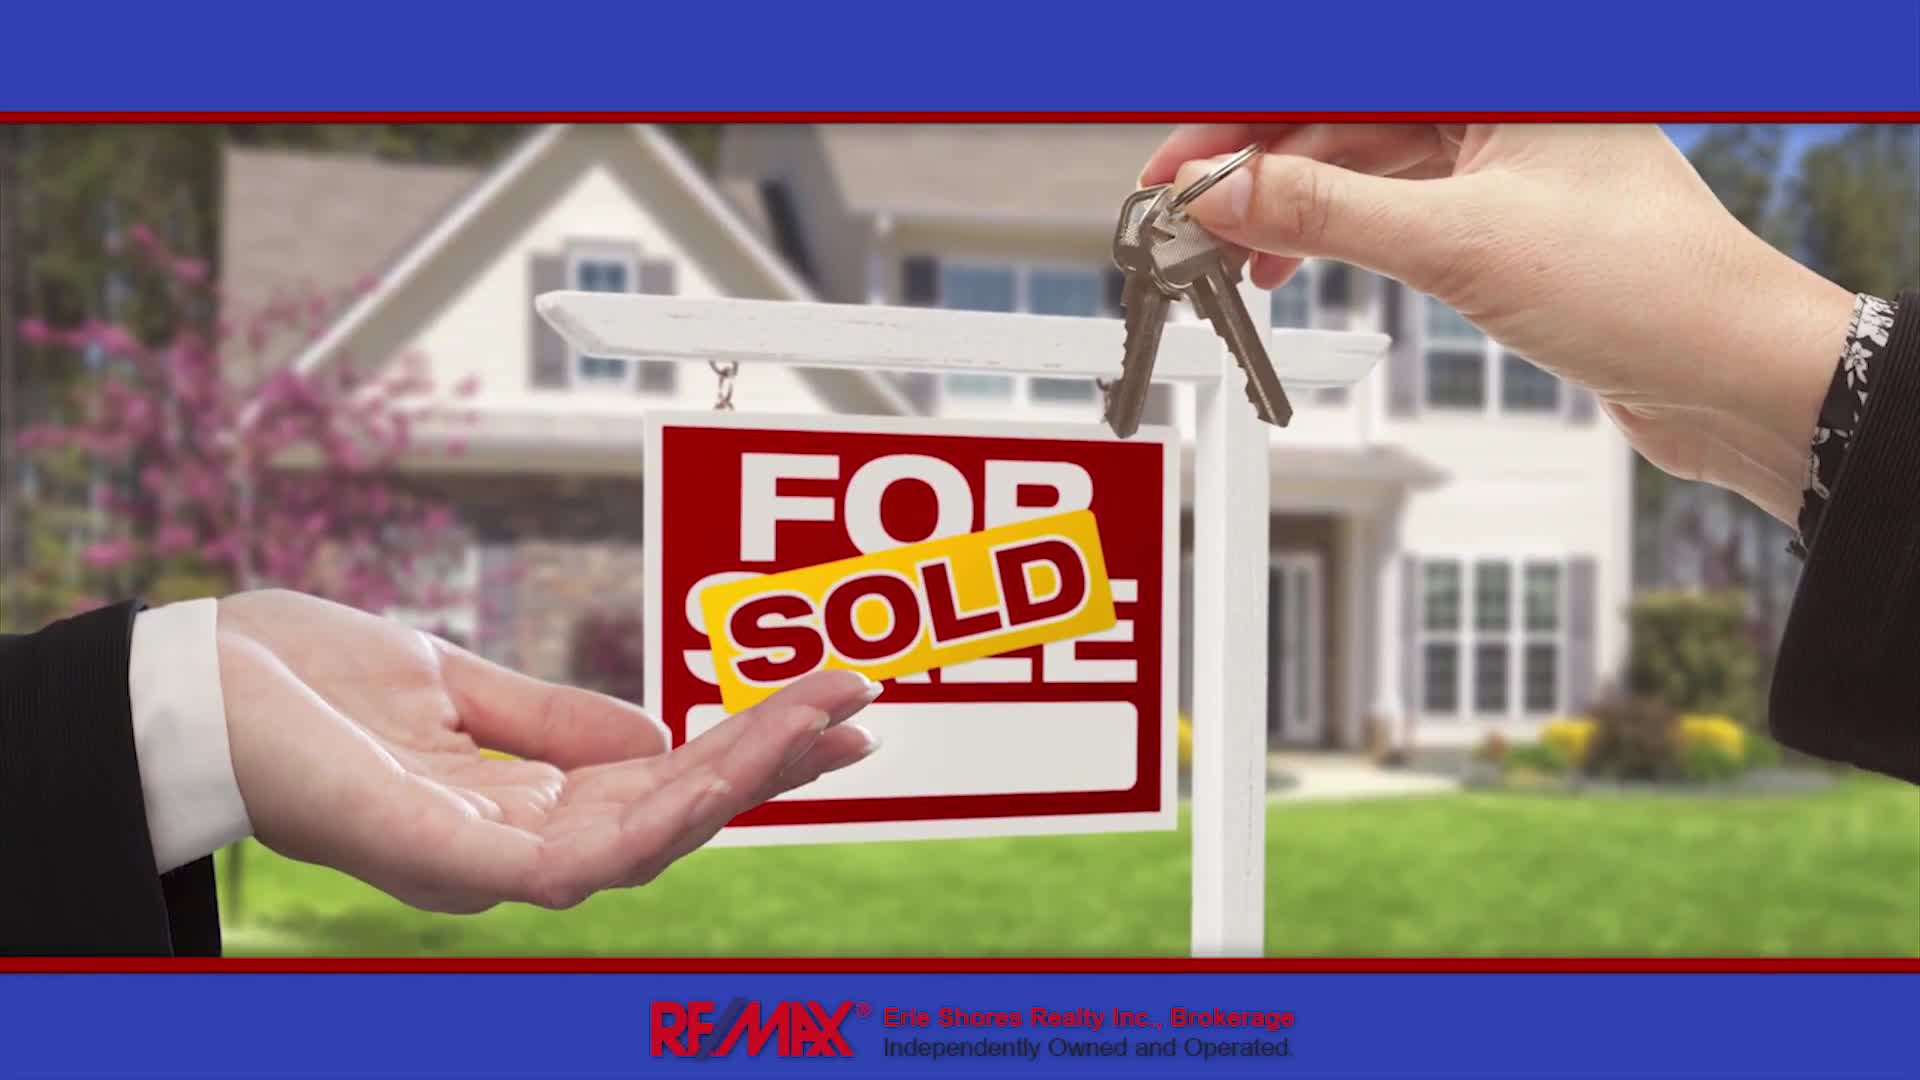 RE/MAX Erie Shores Realty Inc Brokerage - Real Estate Agents & Brokers - 519-426-0081